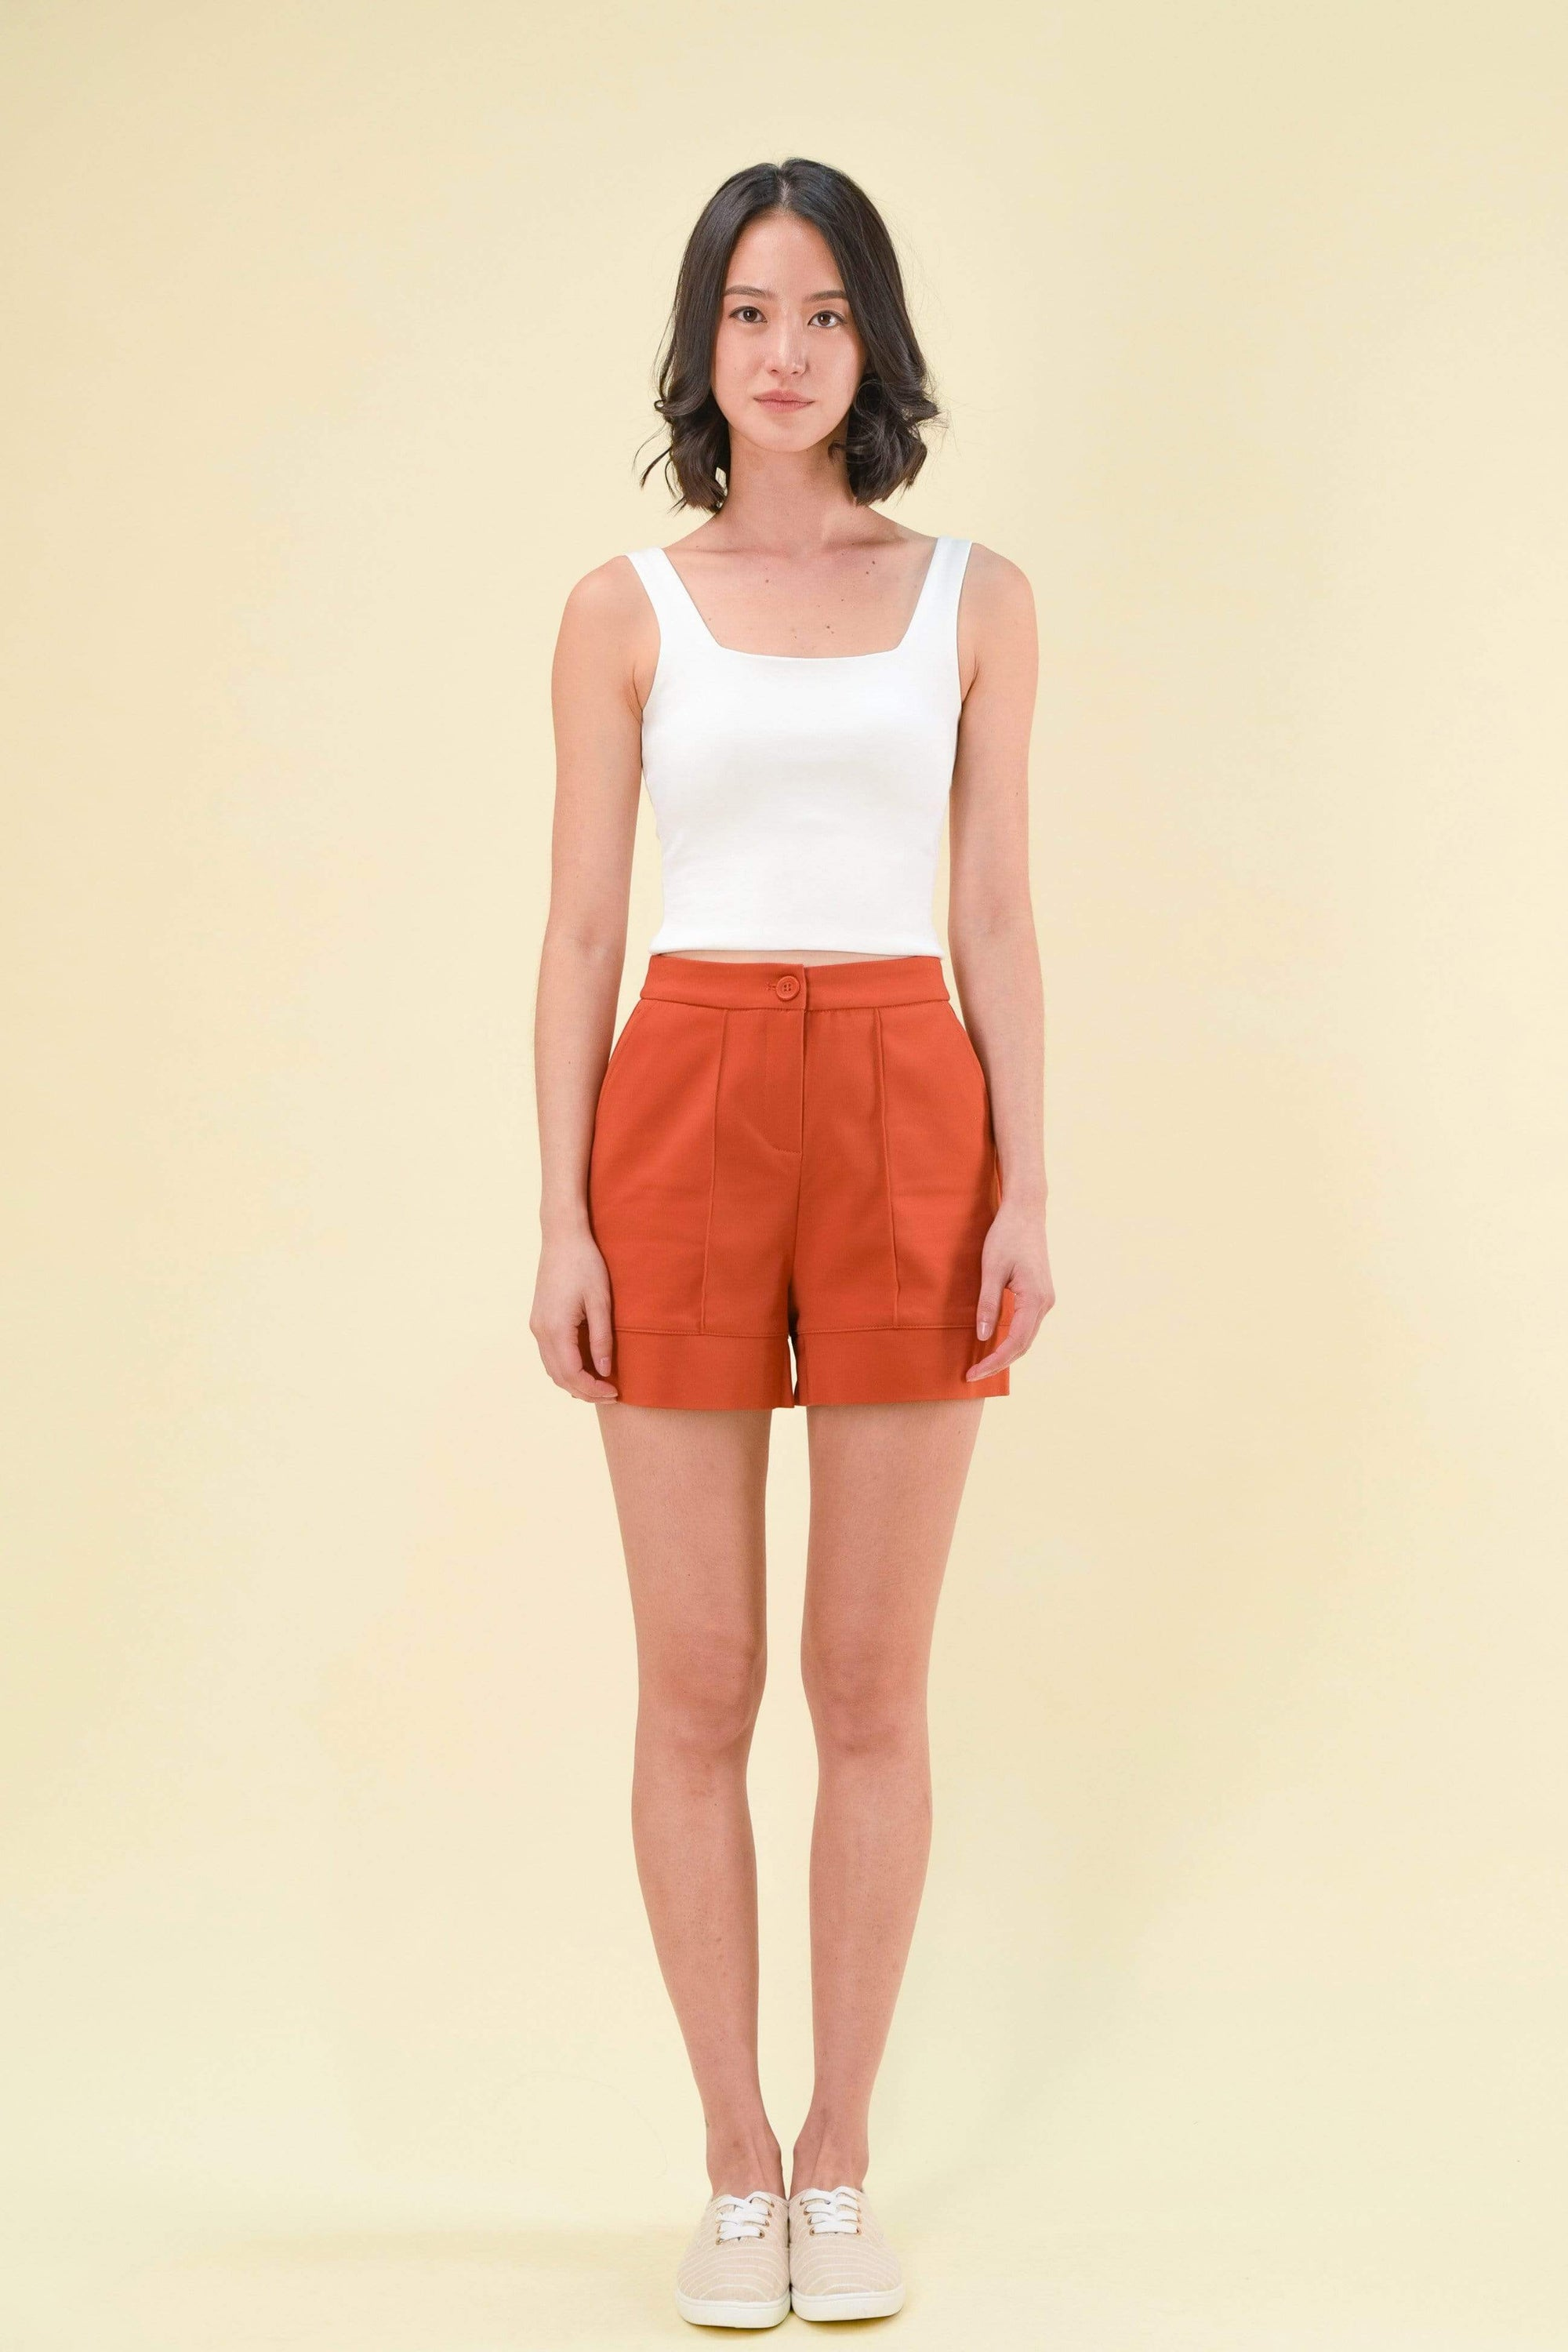 CHERVIL SHORTS IN ORANGE